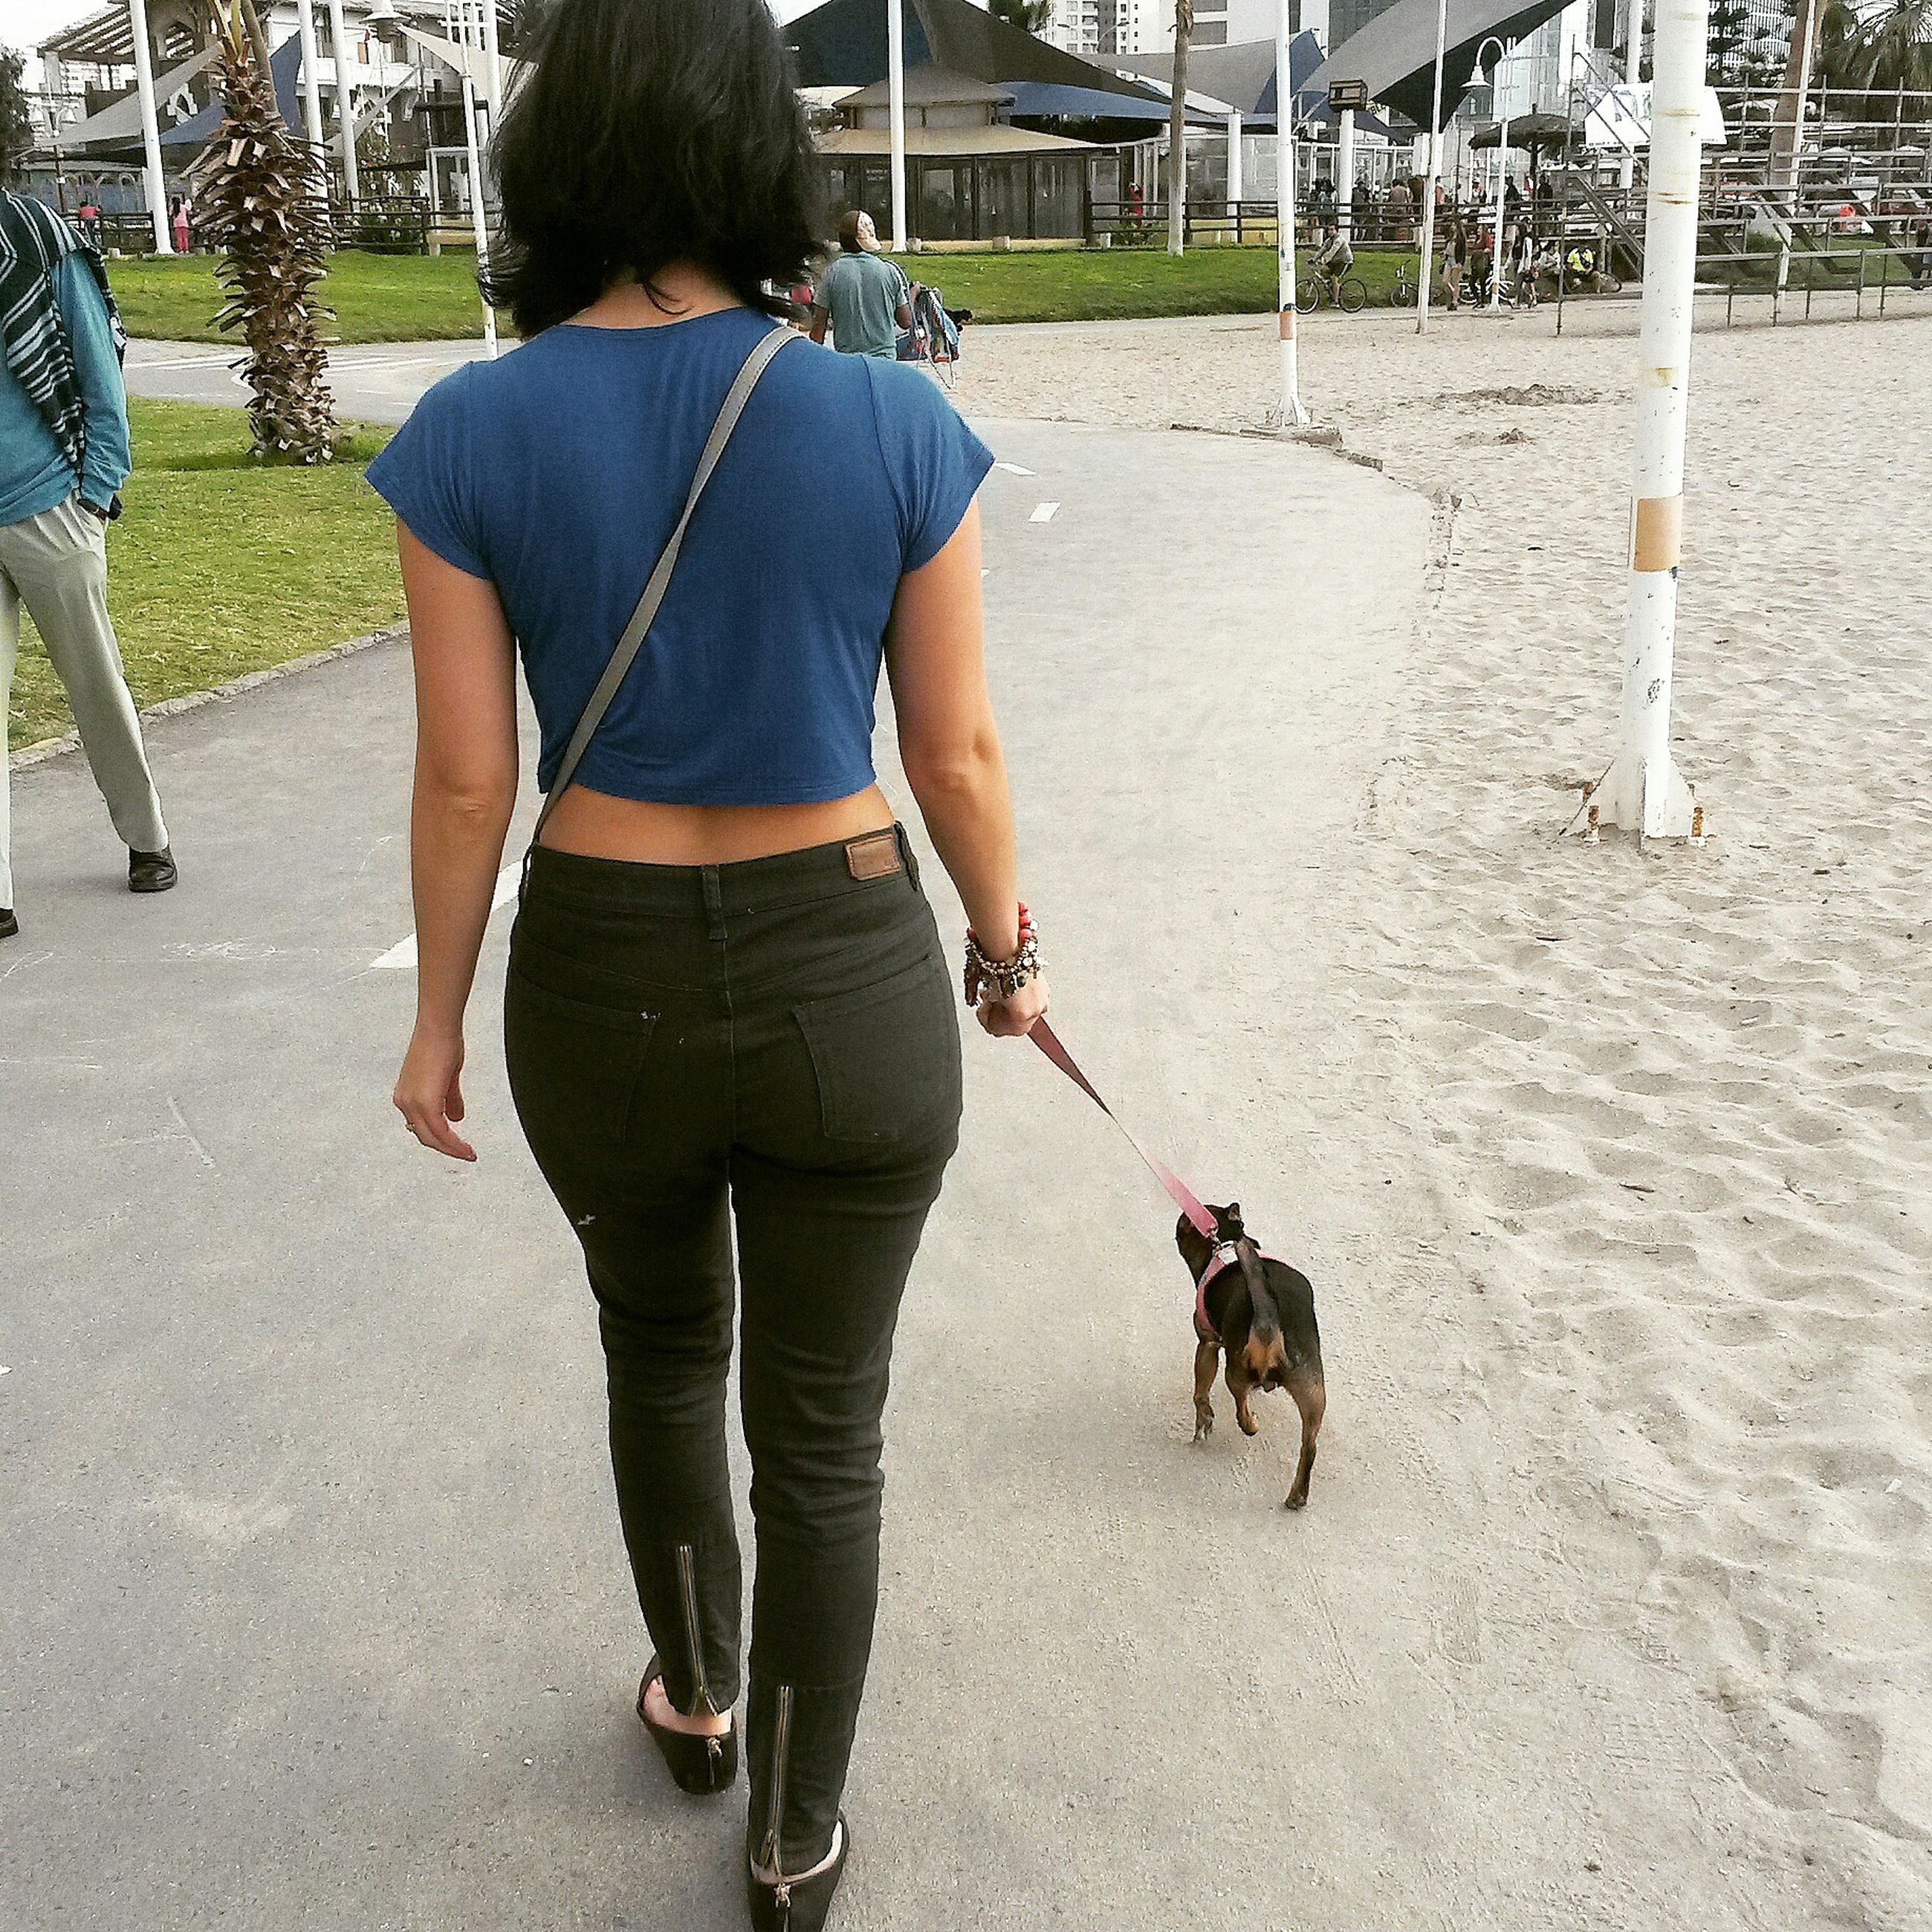 domestic animals, animal themes, dog, pets, one animal, mammal, full length, lifestyles, walking, rear view, casual clothing, leisure activity, men, street, pet leash, pet owner, togetherness